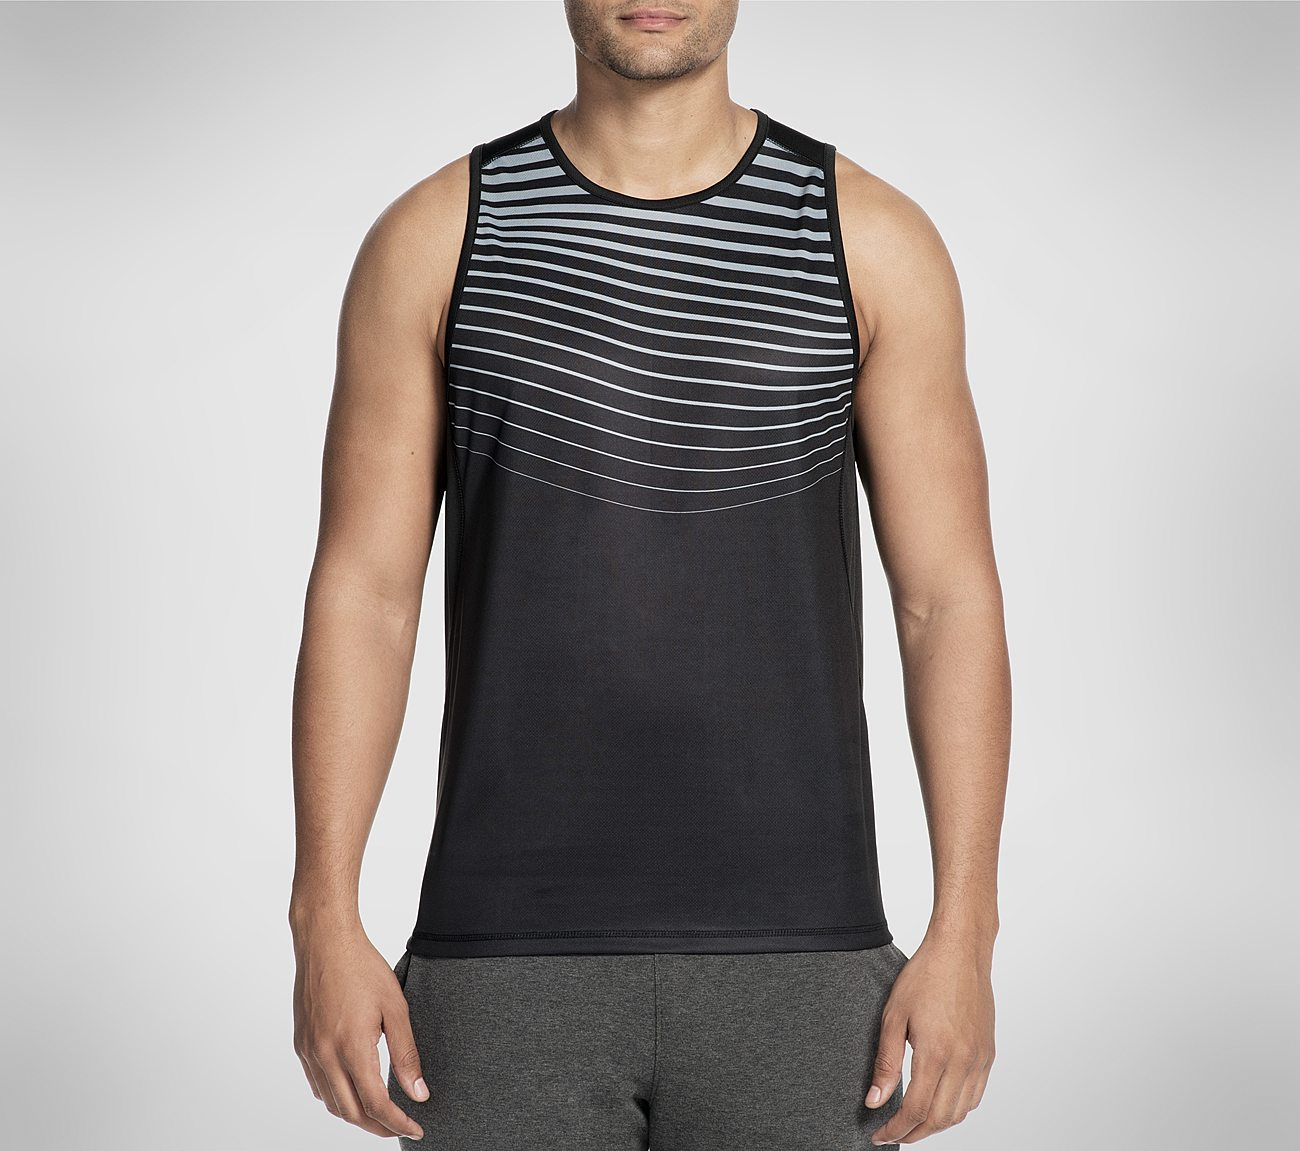 c8a27b738de58b Buy SKECHERS GOrun Wave Singlet Tank Tops Shoes only £19.00